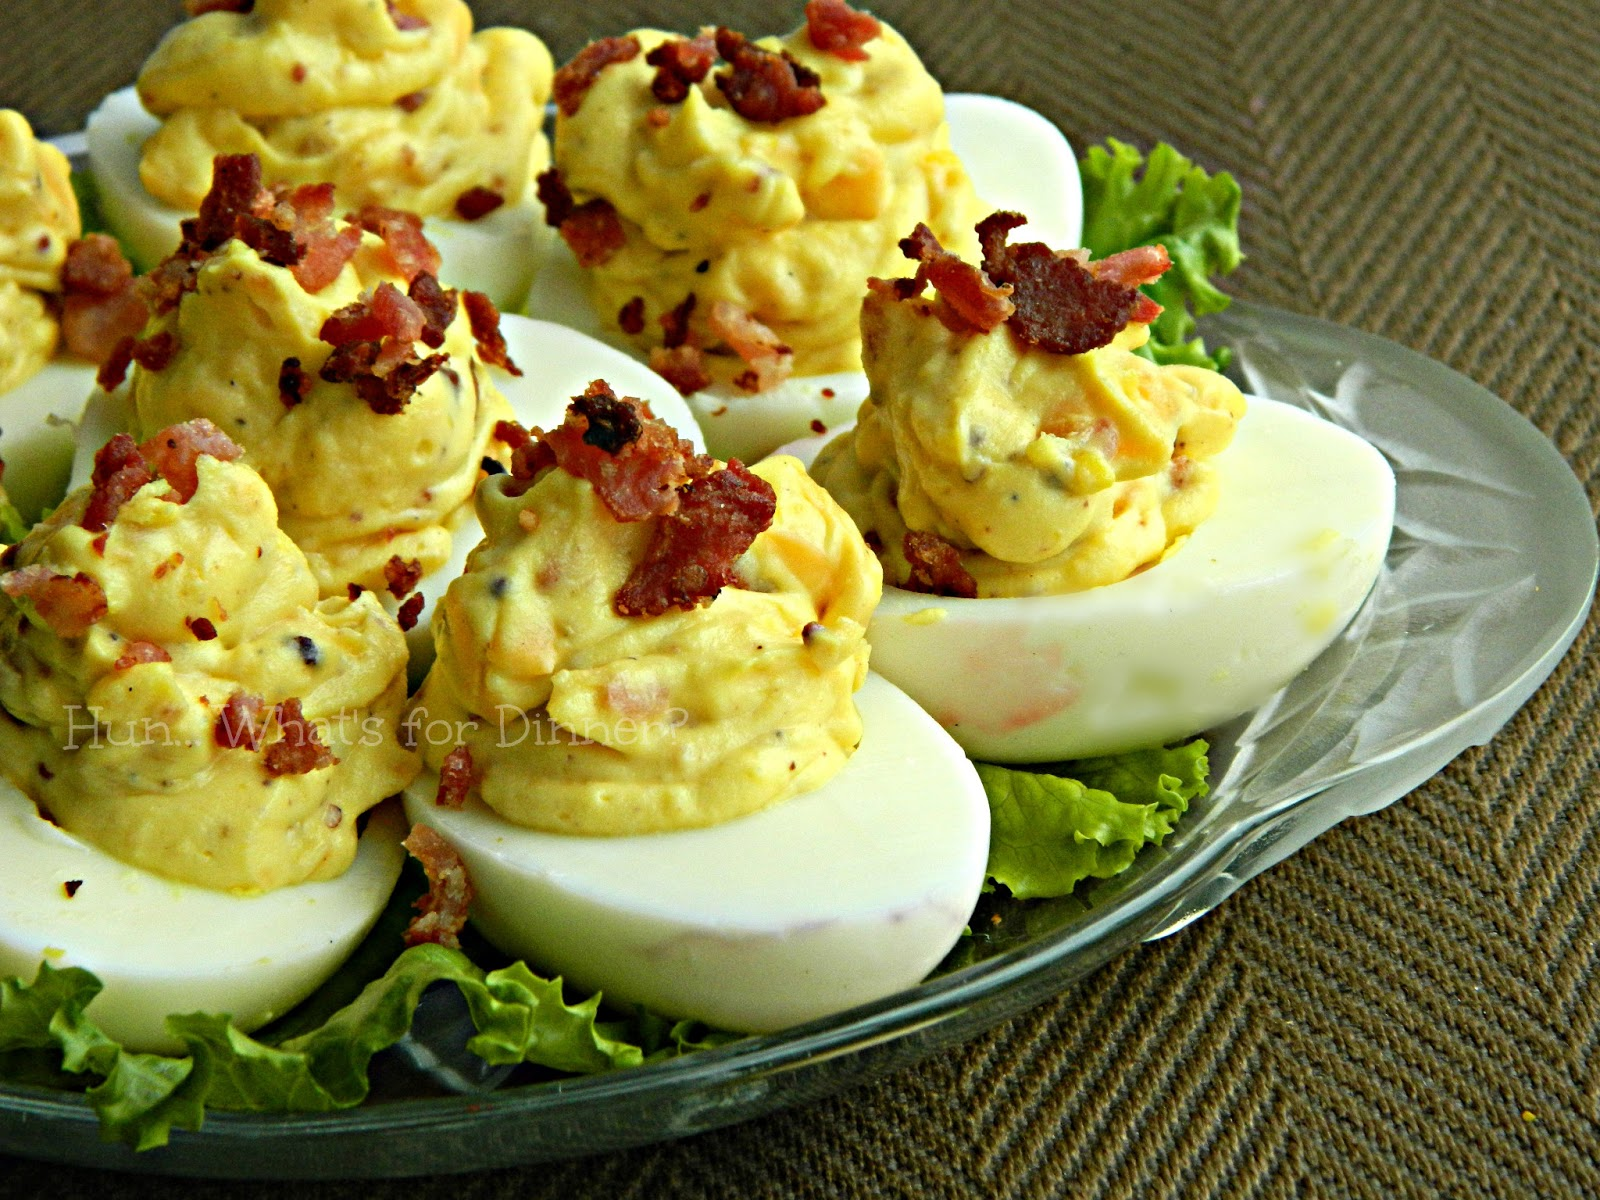 Hun... What's for Dinner?: Bacon Cheddar Deviled Eggs- Recipe Swap